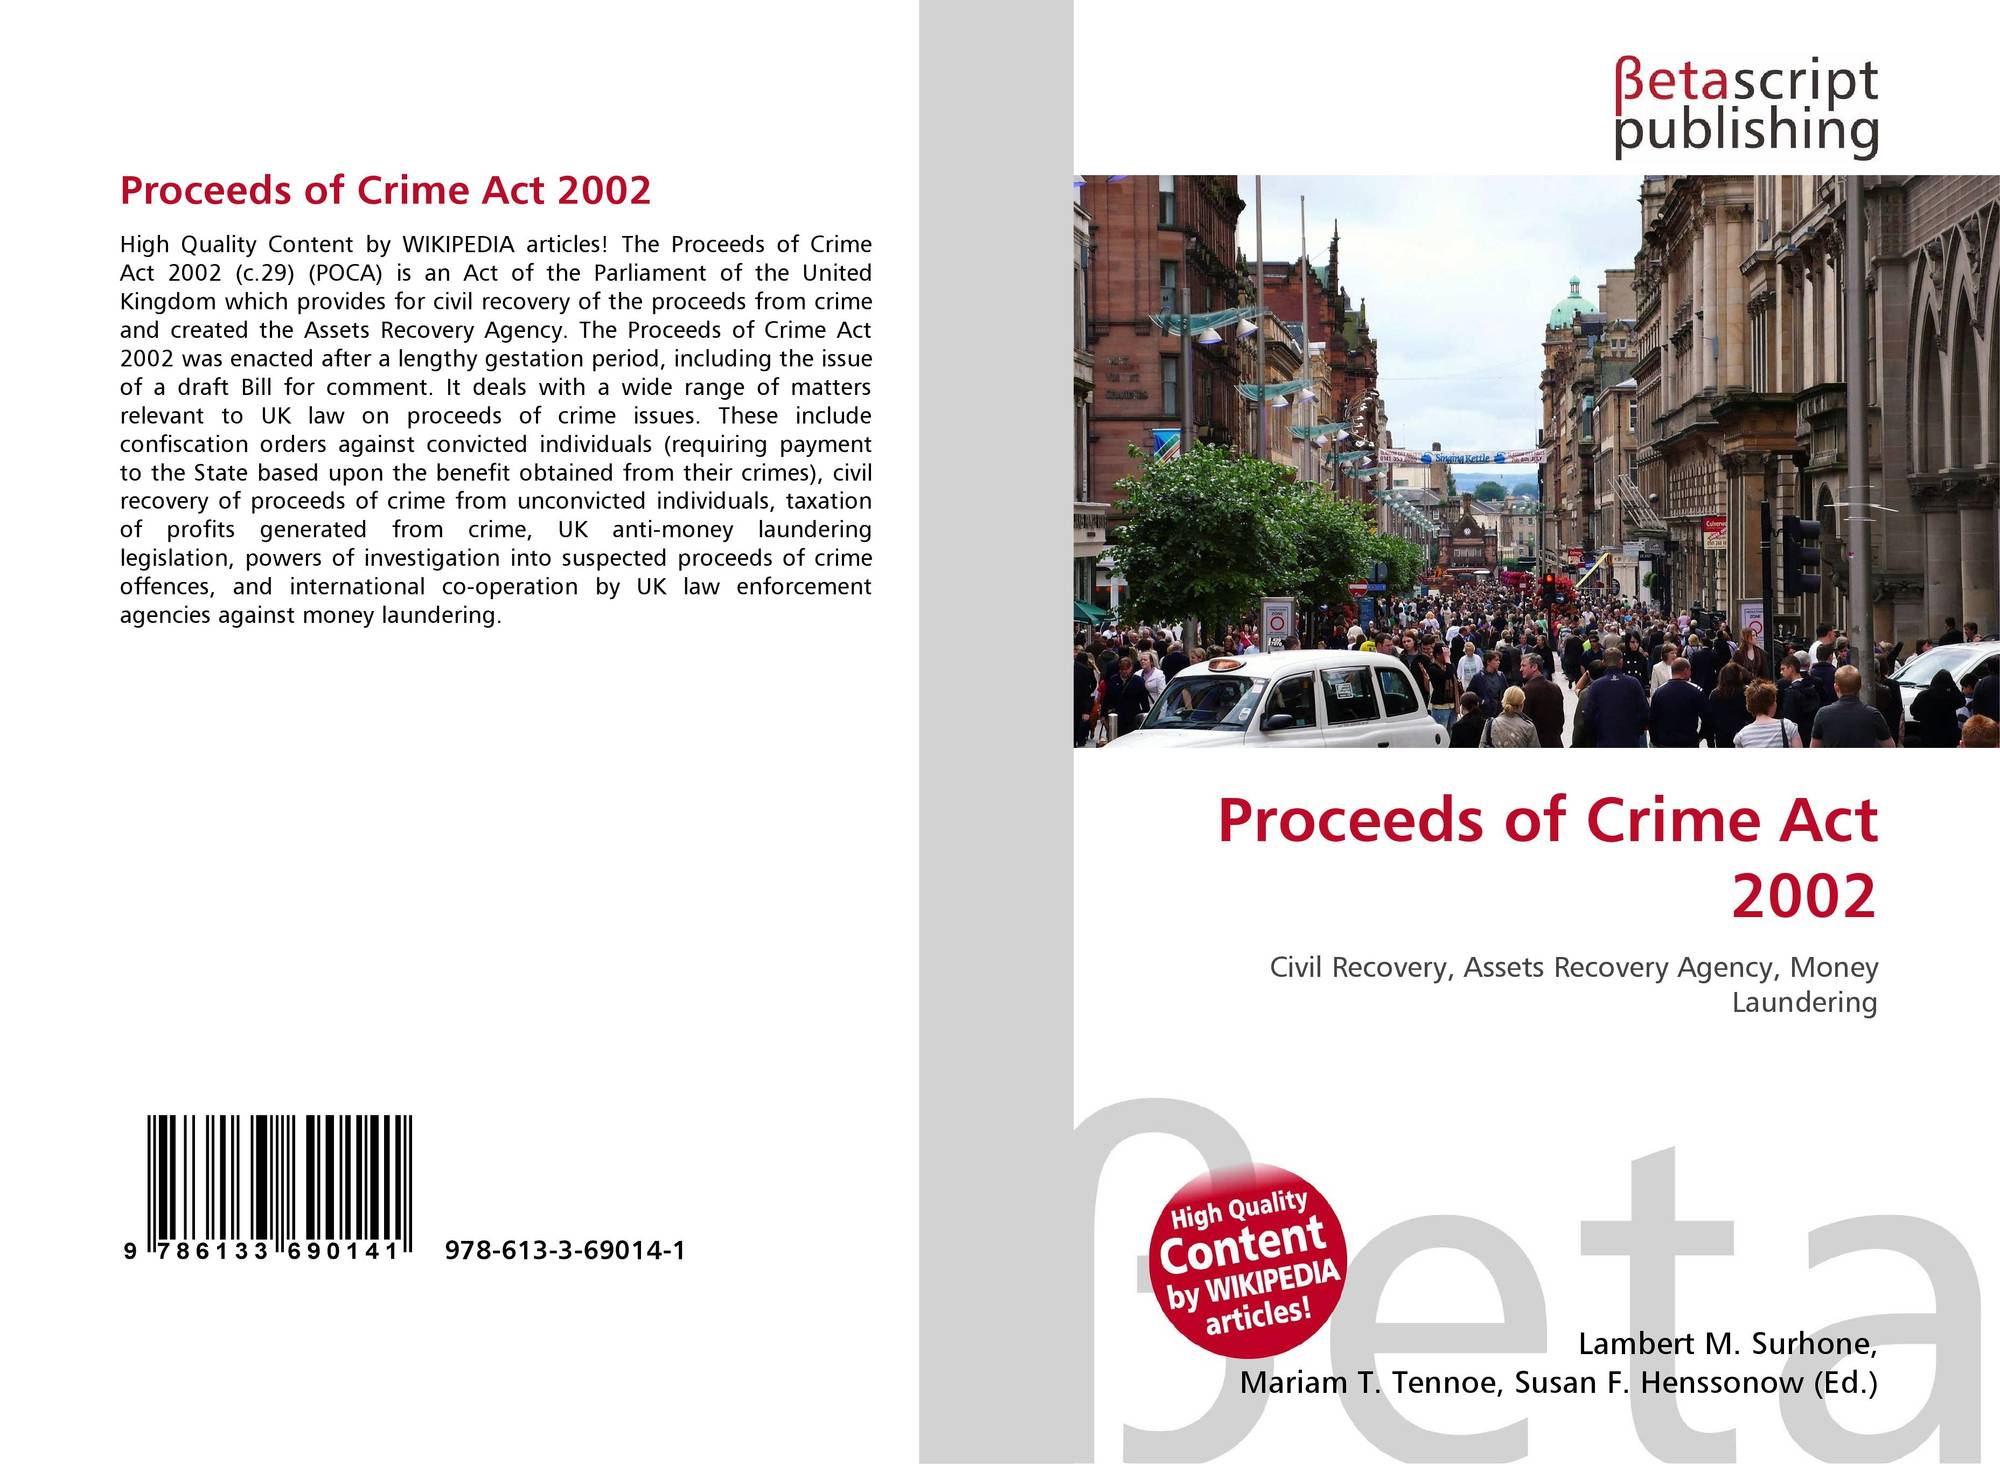 the proceeds of crime act 2002 This report is the result of a joint inspection by her majesty's inspectorate of constabulary for scotland (hmics) and the inspectorate of prosecution in scotland (ips) to inspect the arrangements in police forces and the crown office and procurator fiscal service (copfs) for implementing the proceeds of crime act 2002 in scotland.